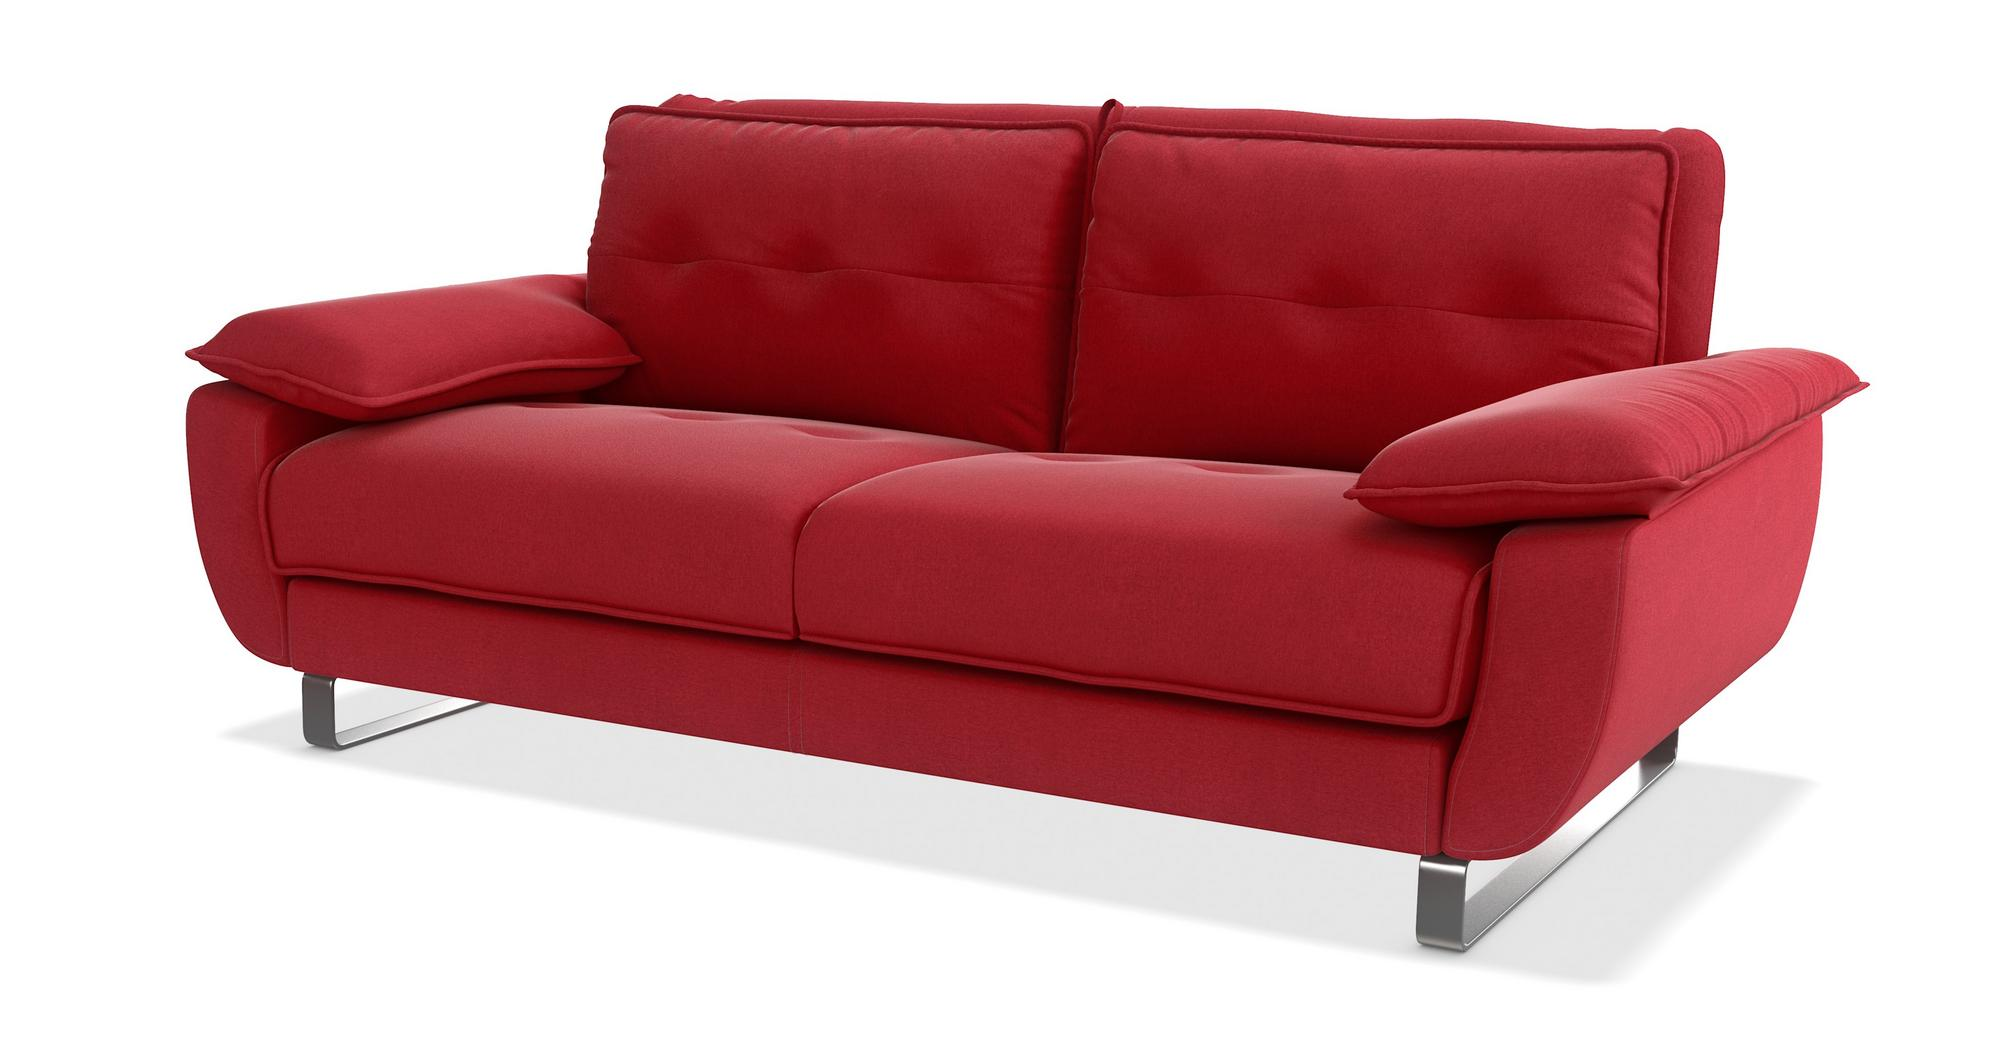 Dfs Fling 2 Seater Sofa Bed